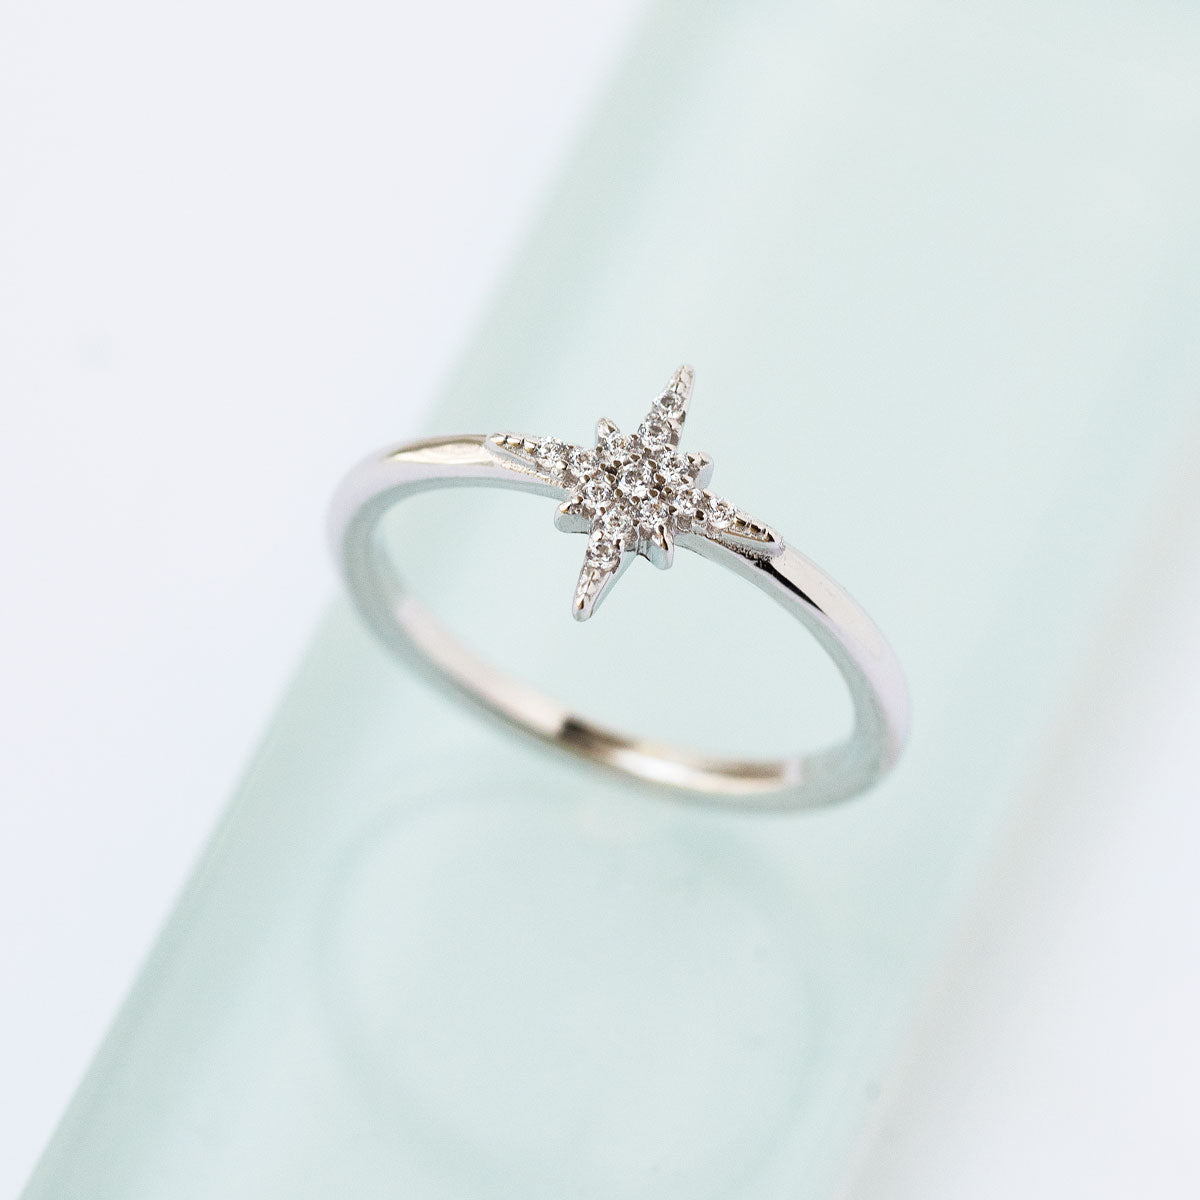 Sterling Silver Star Ring set with Pave Cubic Zirconia Stones